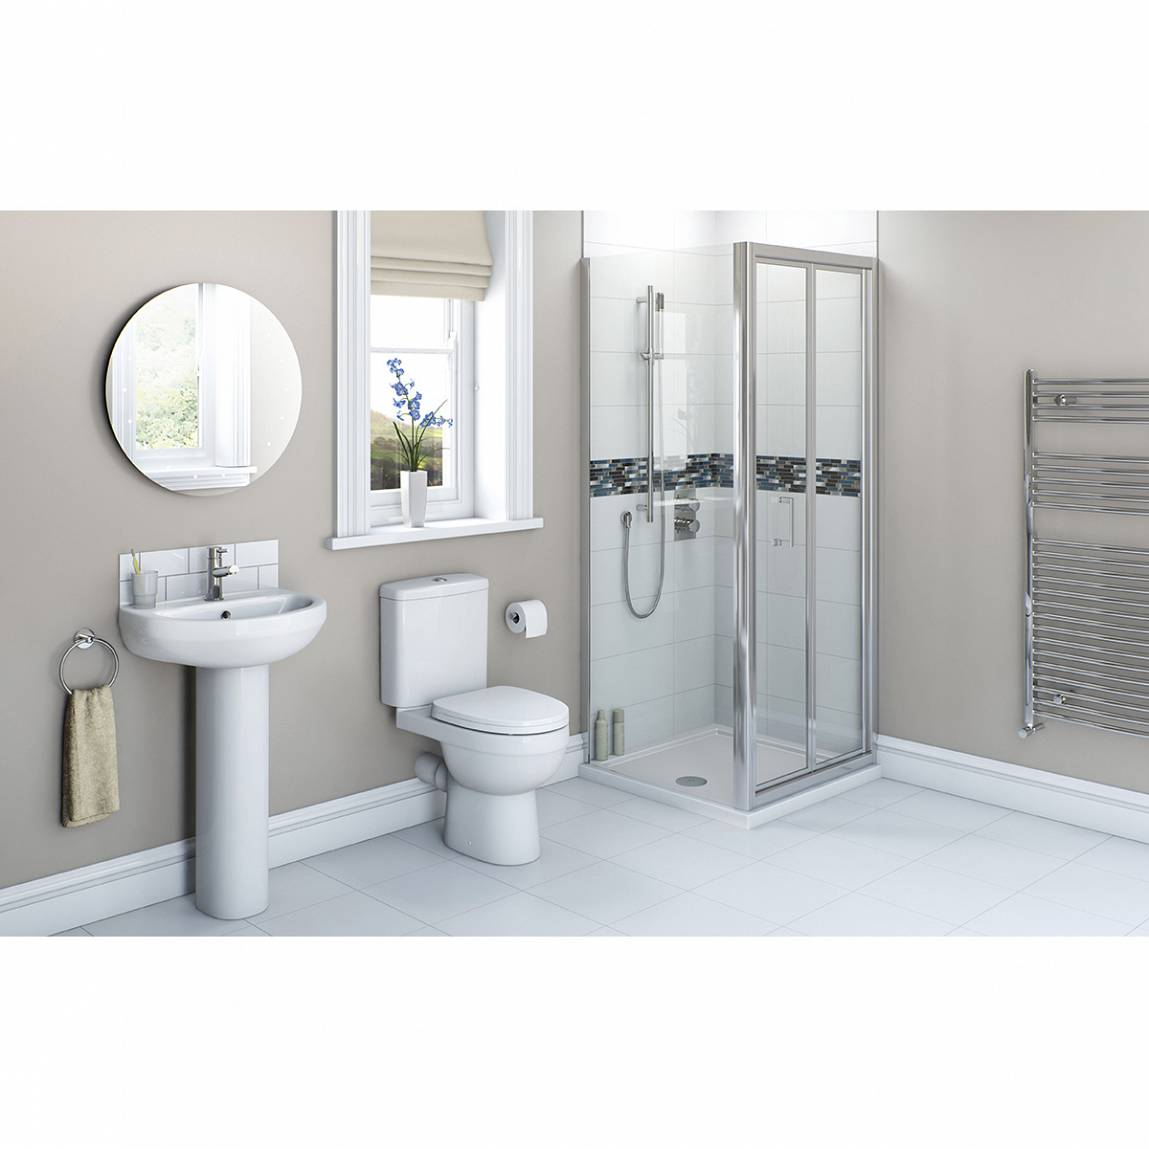 Image of Energy Bathroom set with Bifold Enclosure & Tray